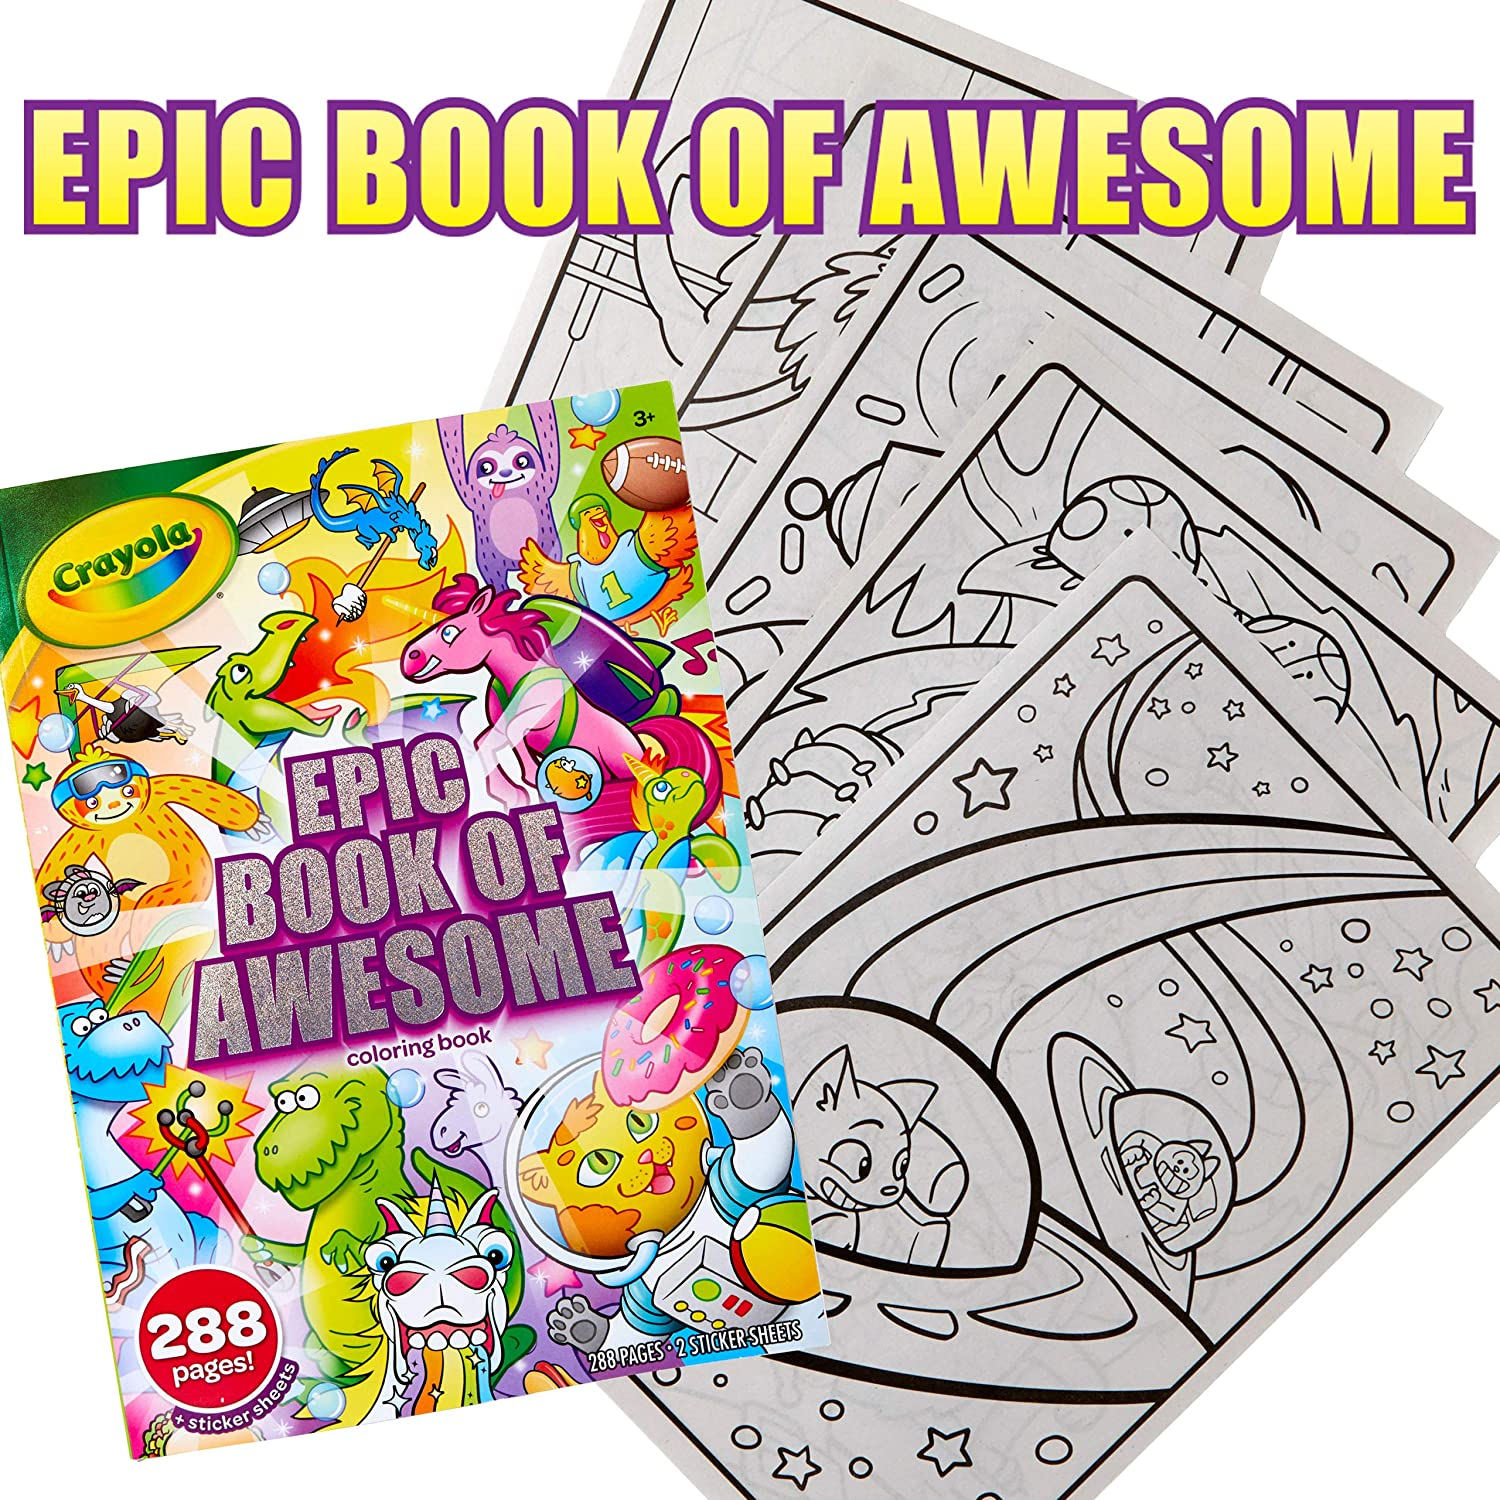 Amazon Com Crayola Epic Book Of Awesome All In One Coloring Book Set 288 Pages Kids Indoor Activities Gift Toys Games